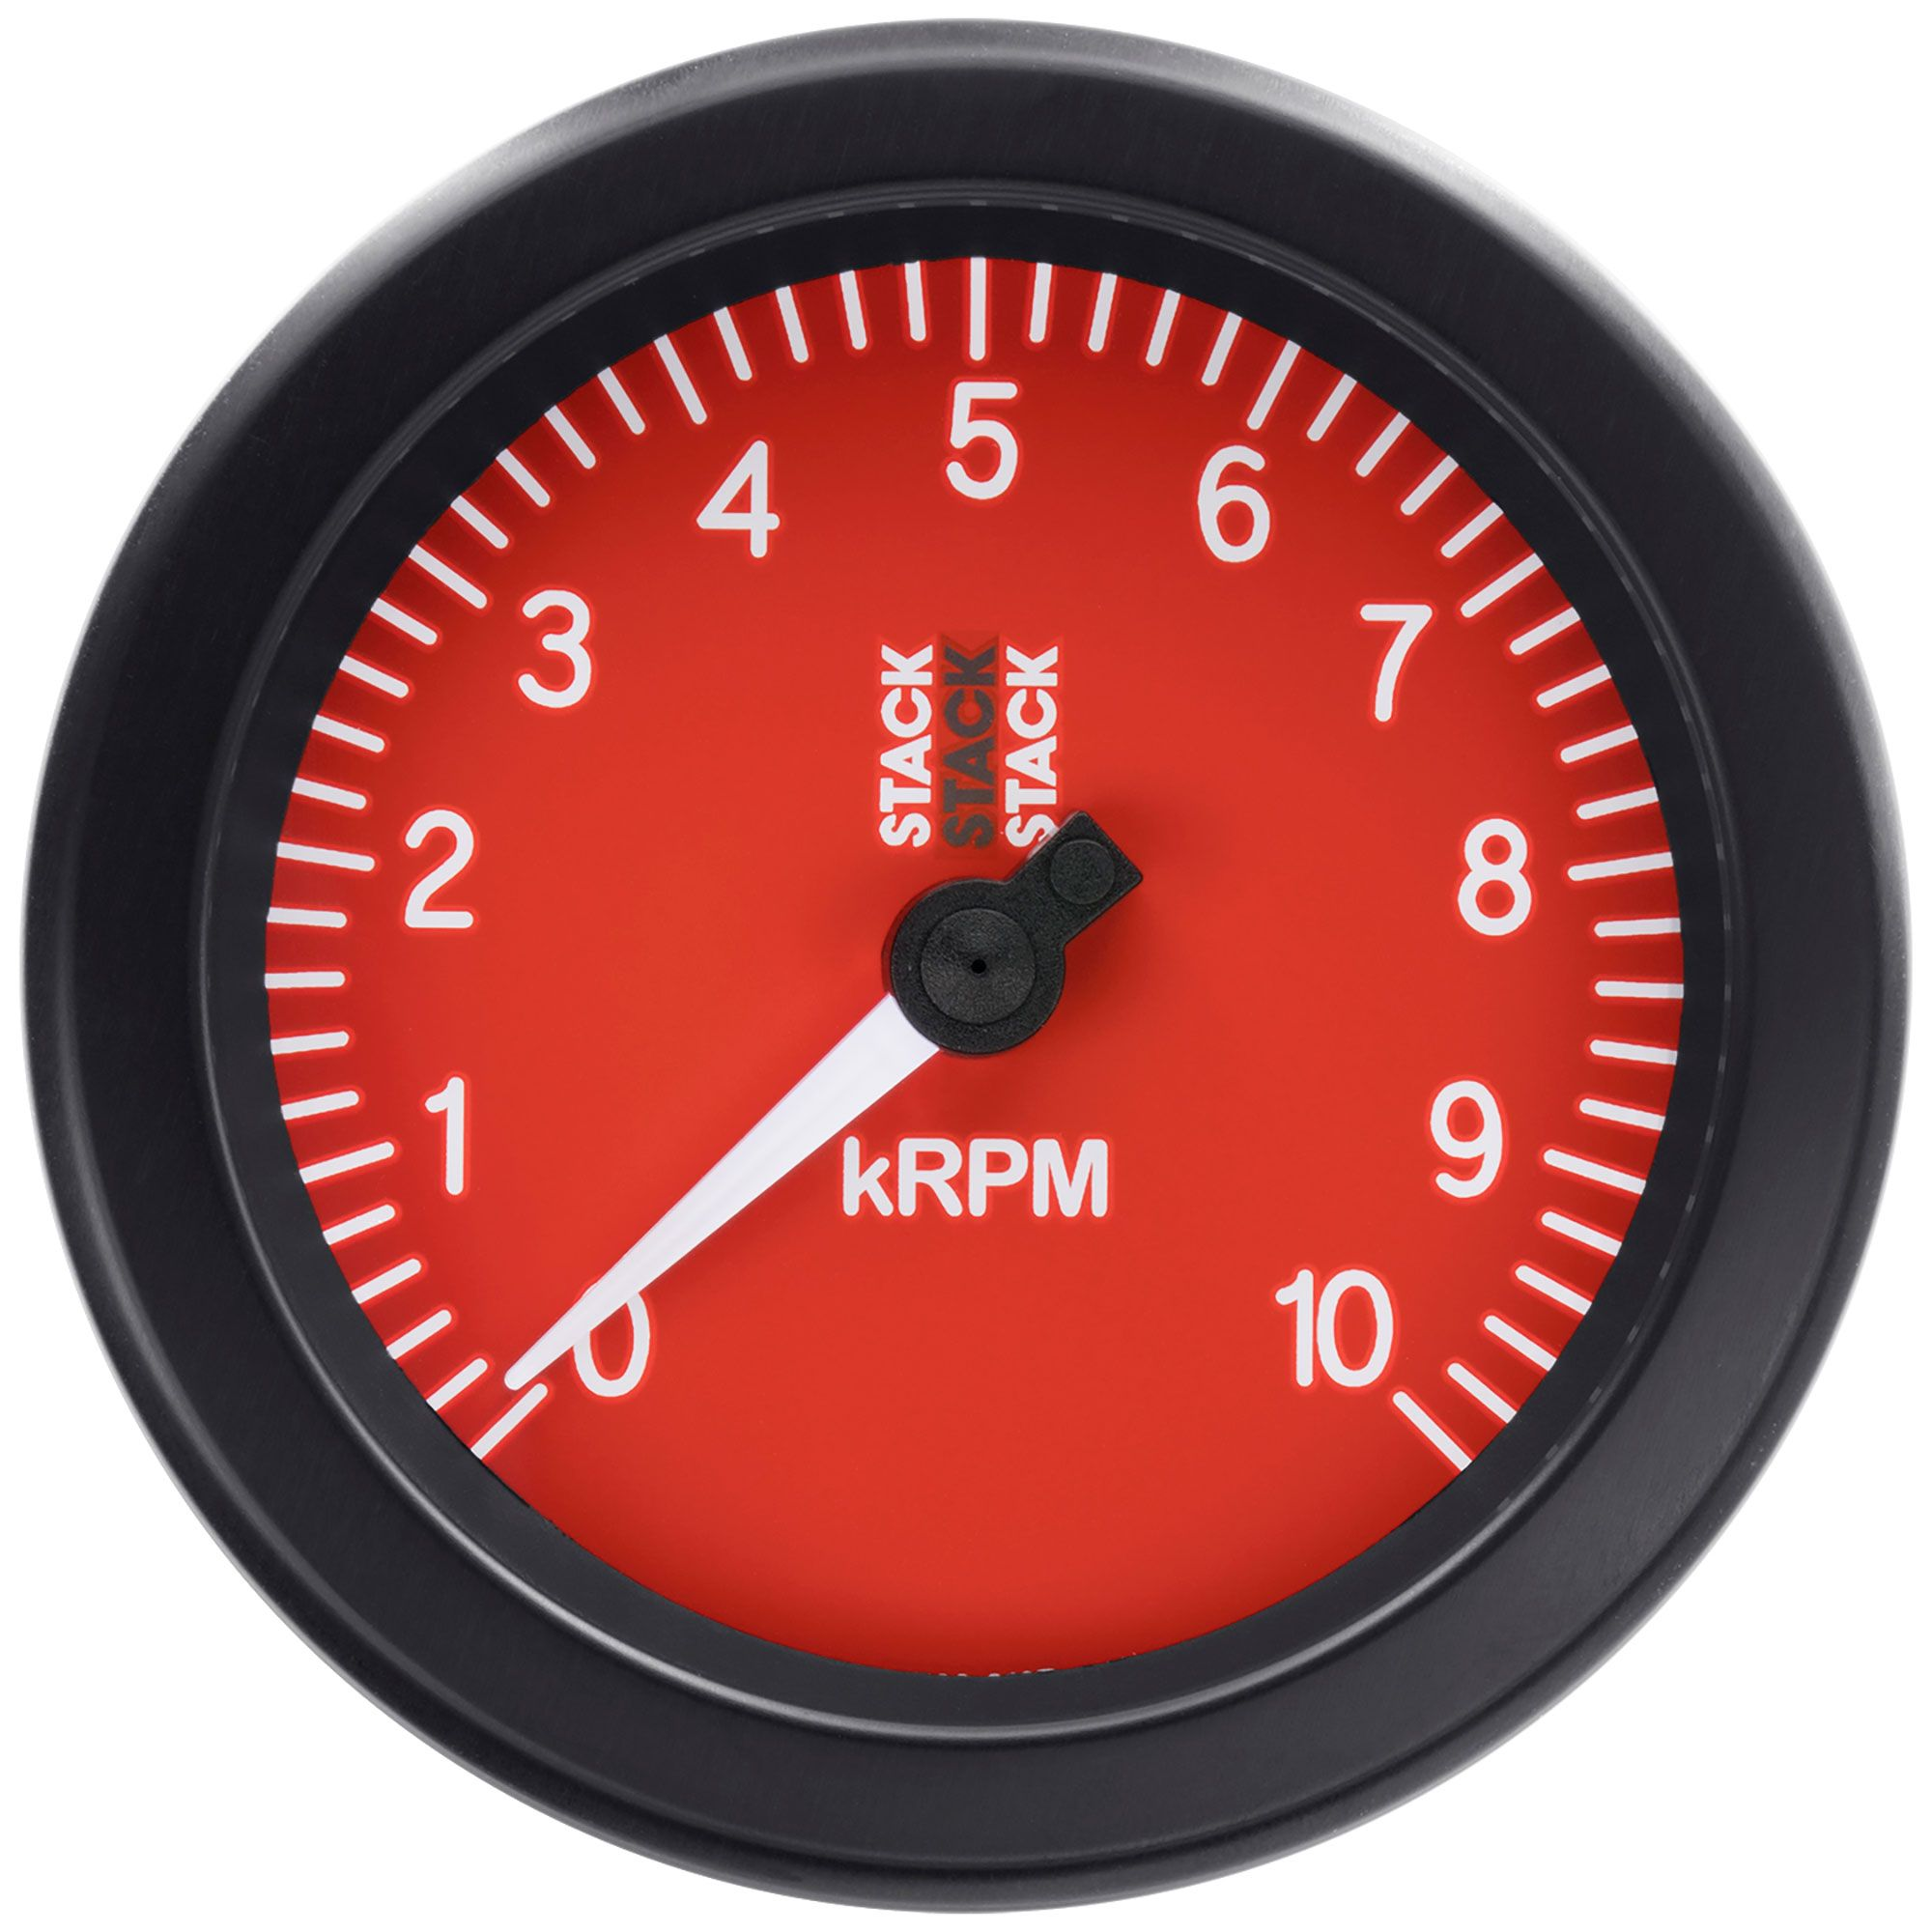 Stack ST100 85mm Track Race Car Tachometer With Black Dial Face0-8,000 Rpm